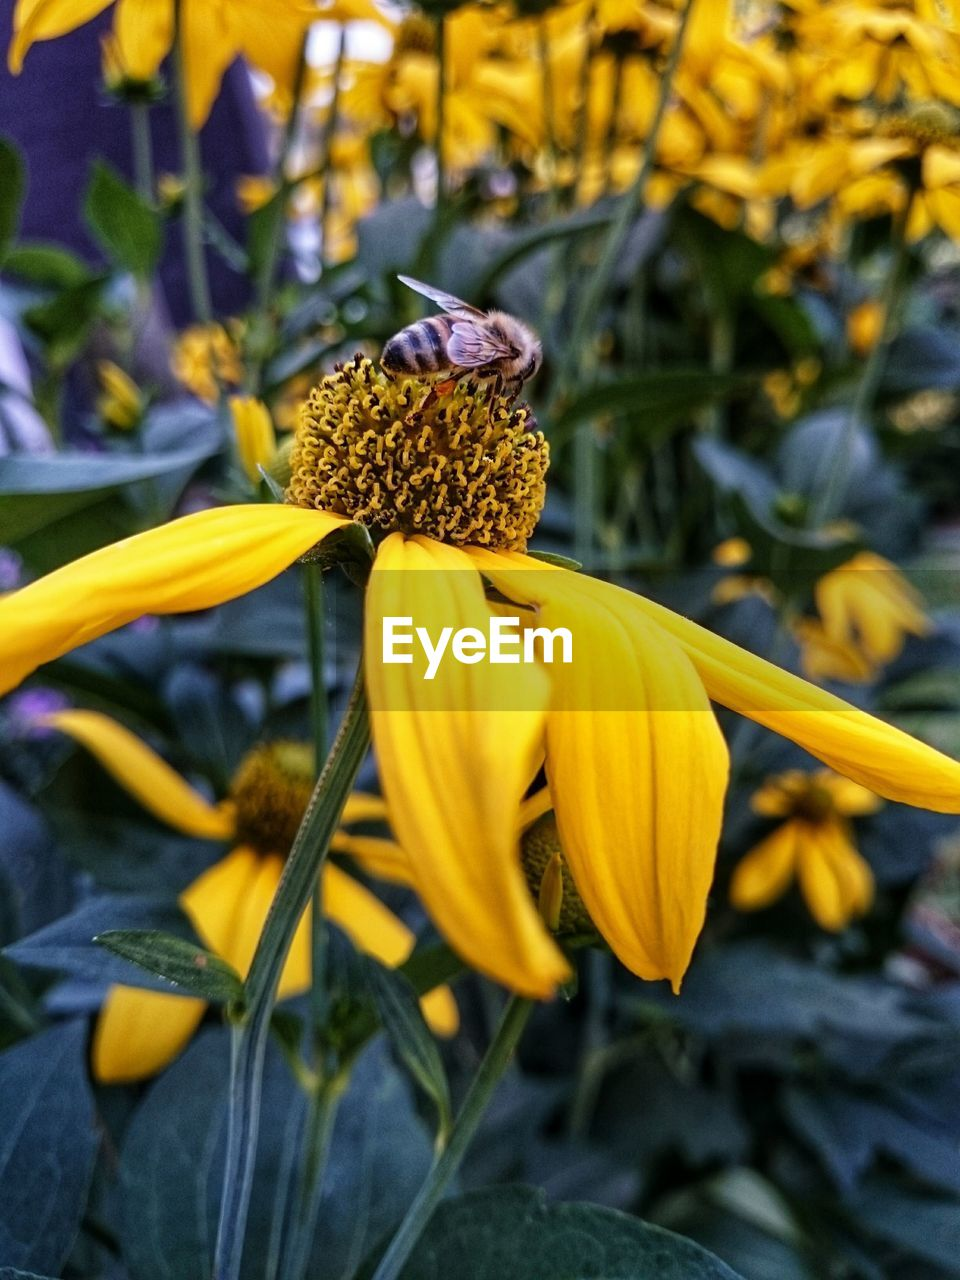 flower, flowering plant, vulnerability, plant, fragility, yellow, freshness, growth, beauty in nature, flower head, petal, inflorescence, close-up, nature, no people, day, focus on foreground, pollen, coneflower, botany, outdoors, pollination